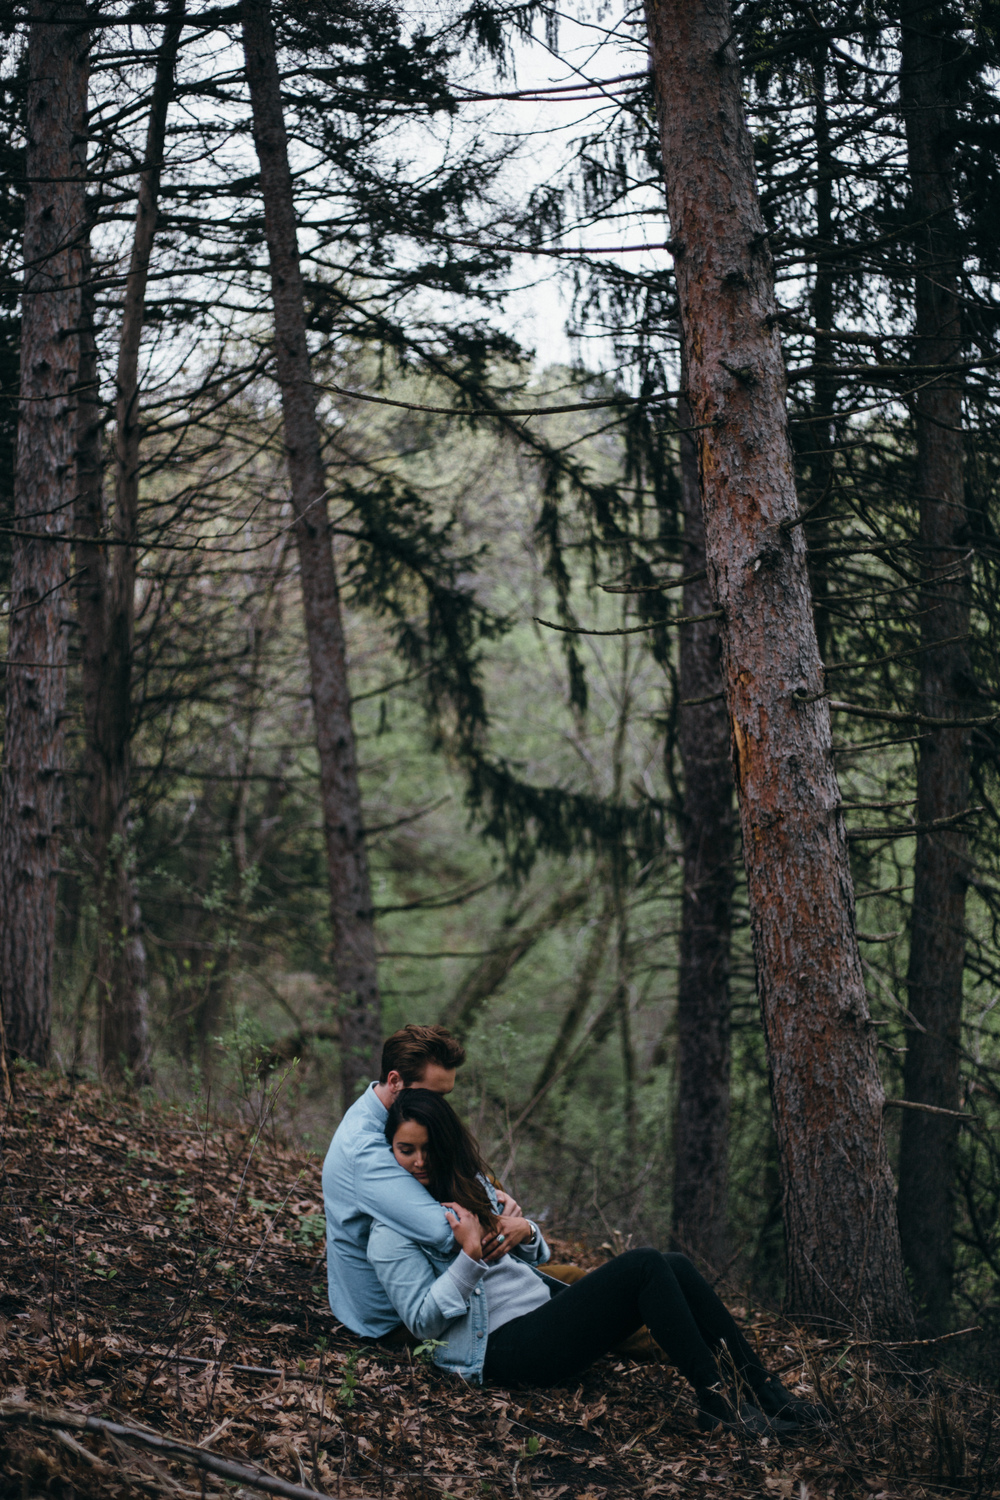 impassioned-couple-photography-session-in-the-forest-photo-by-britt-dezeeuw-brainerd-mn-wedding-photographer